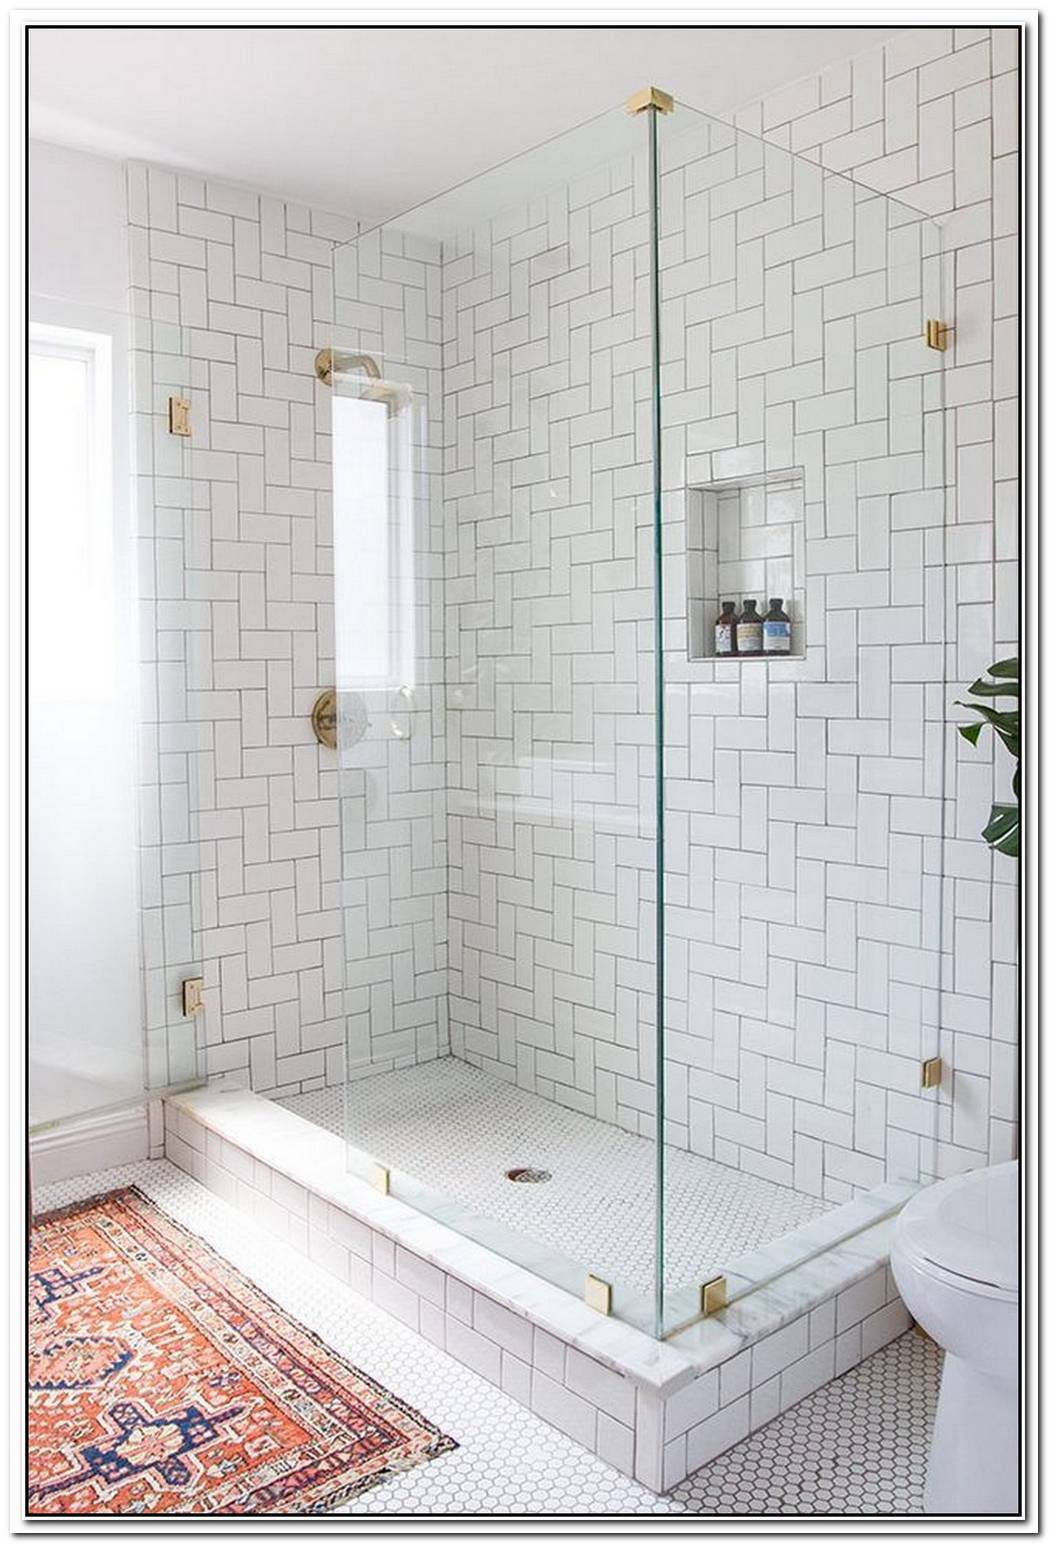 10 Swanky Faucets To Check Out For A Bath Remodel